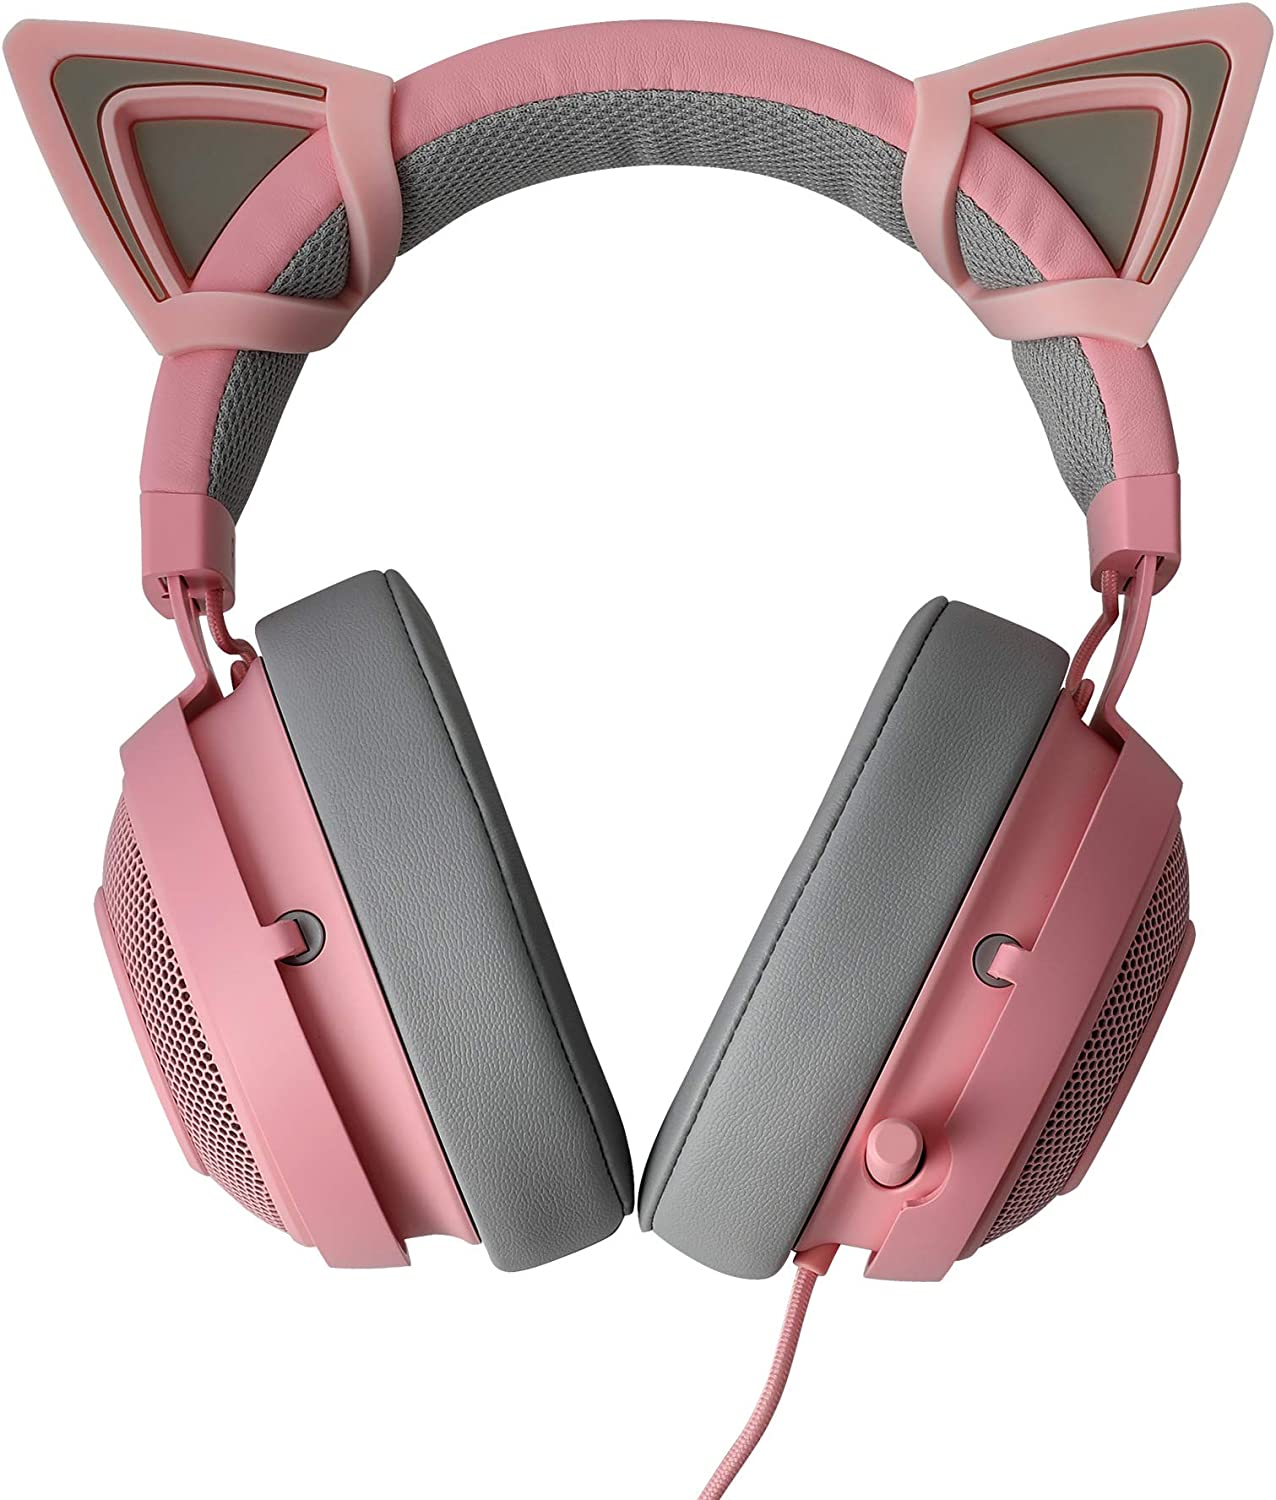 Amazon Com Wethinkeer Pink Kitty Ears For Headsets Lovely Attachable Accessory For Headphones Adjustable Straps Universal Fit Sturdy And Washable Add Fun To Your Life Ideal Gift For Anyone Home Audio